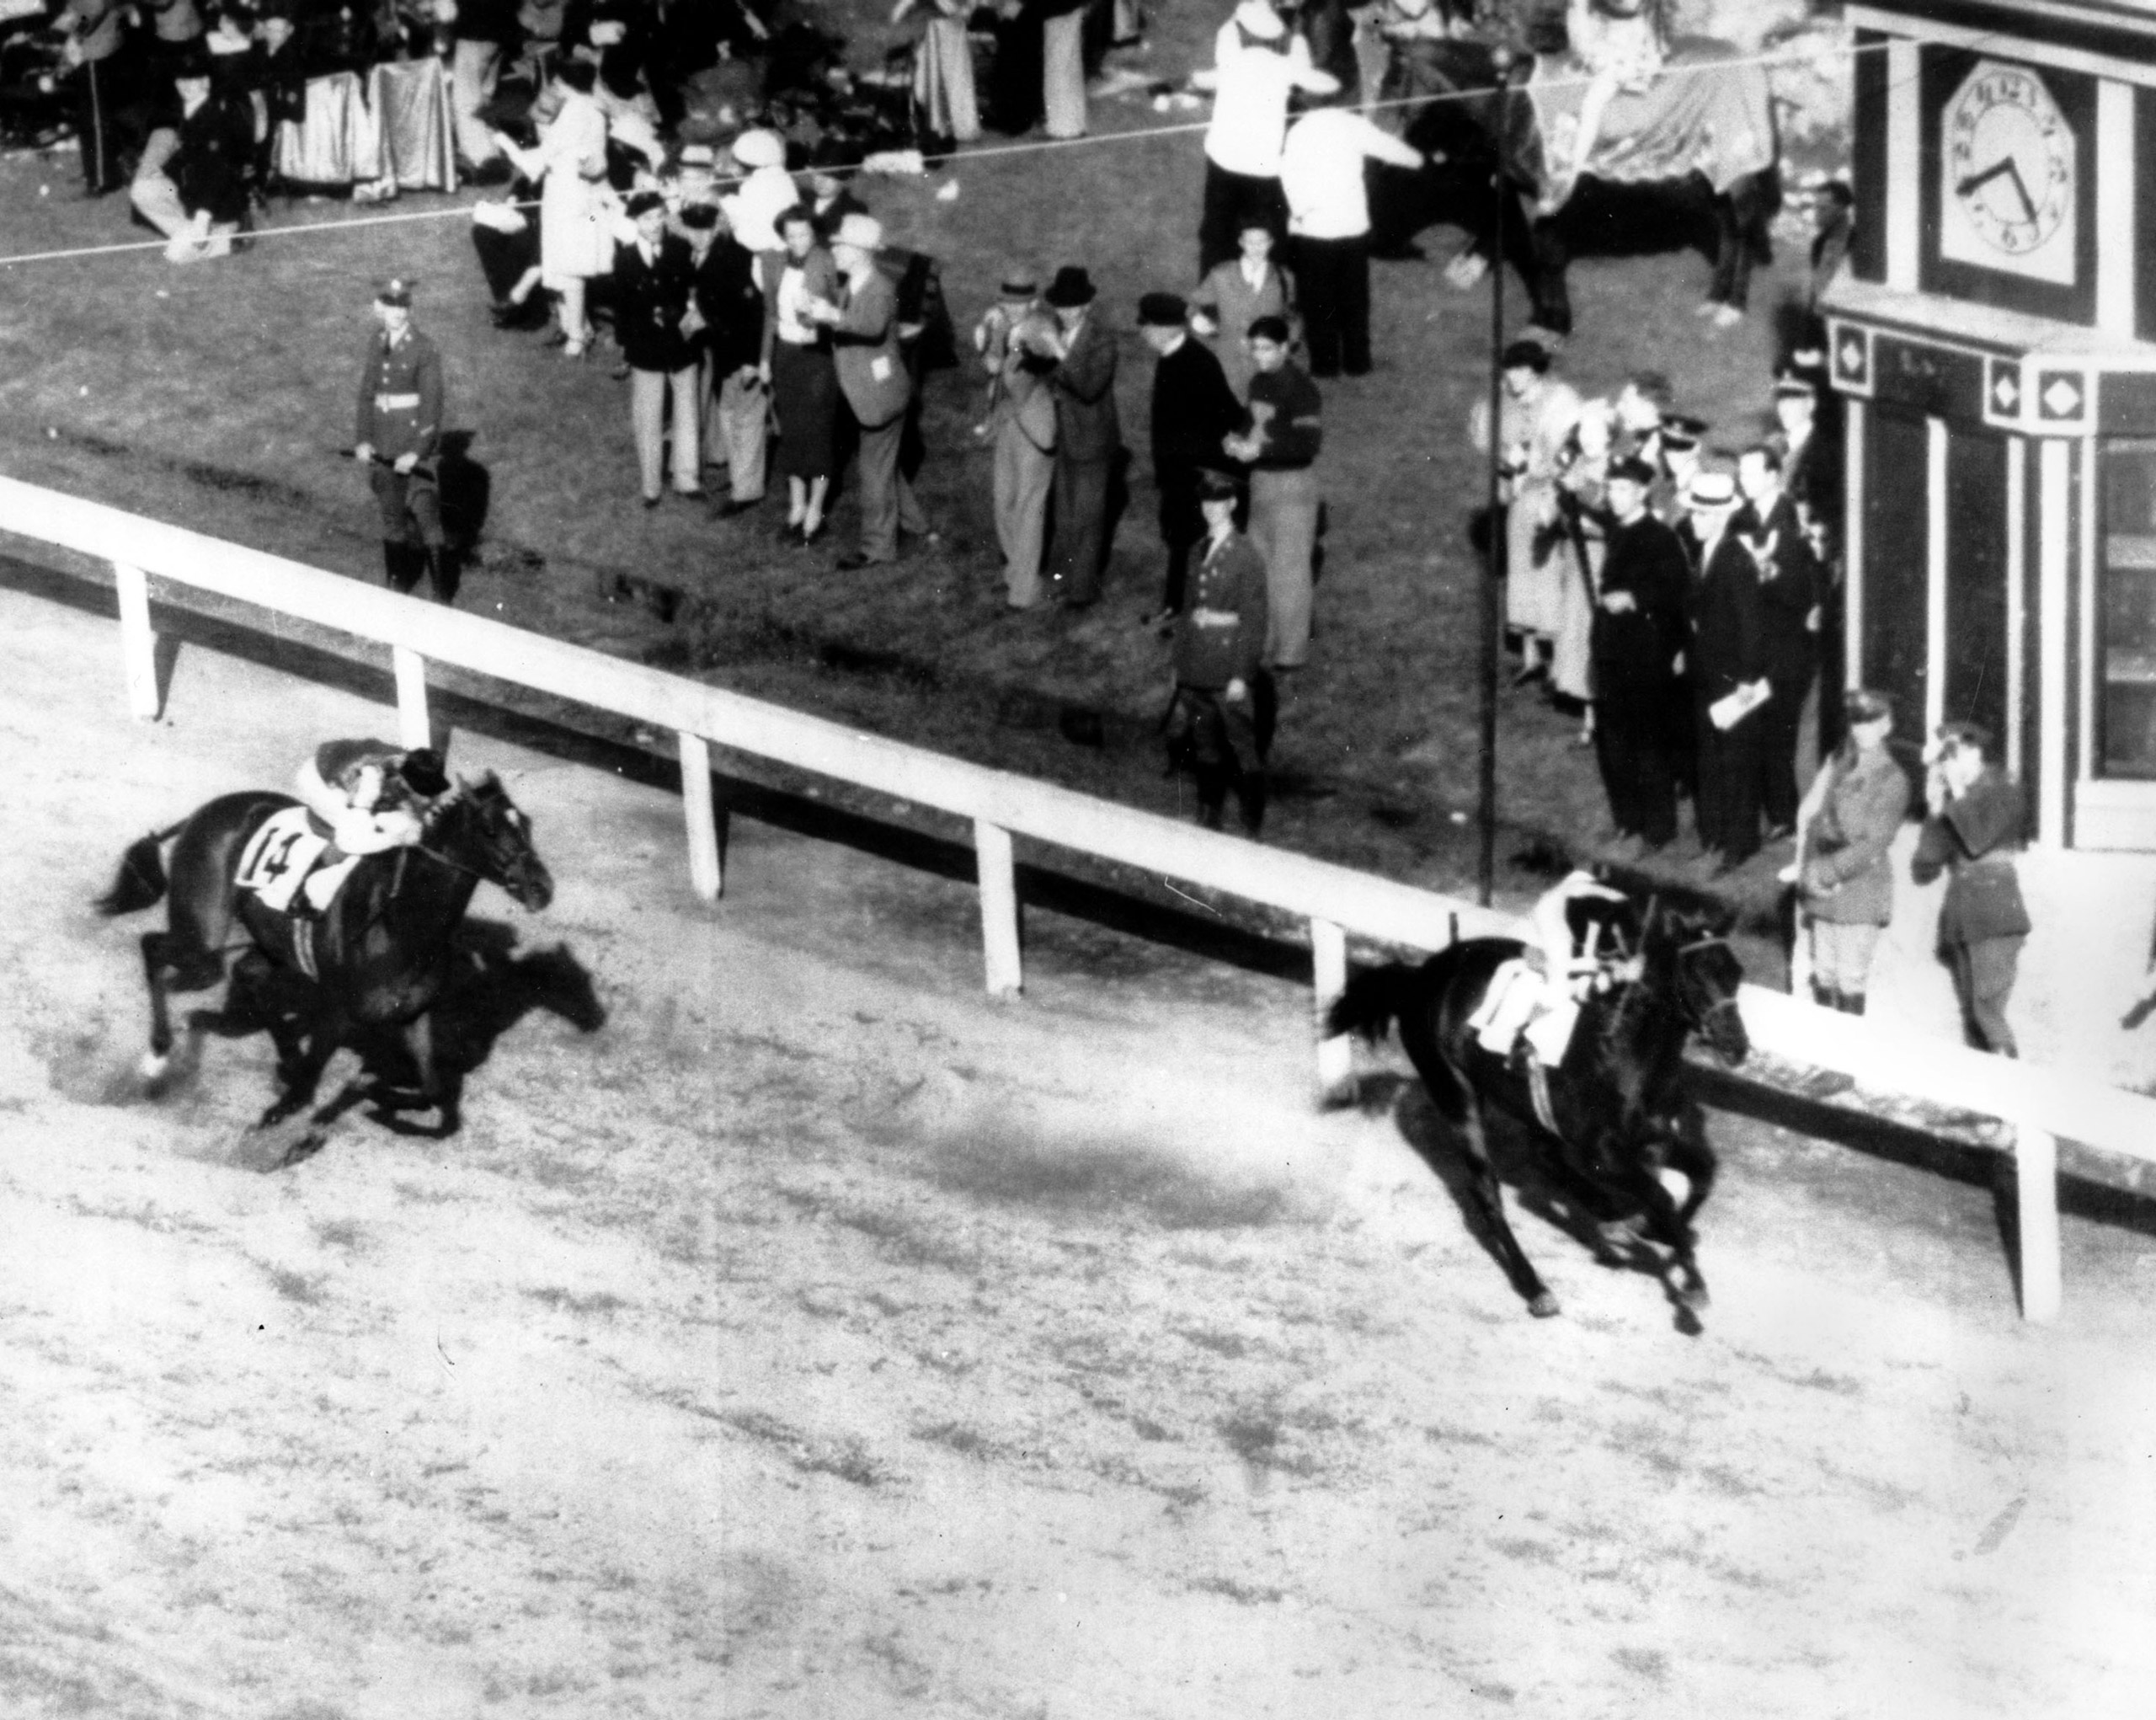 War Admiral wins the Kentucky Derby two lengths ahead of his challenger, Pompoon, at Churchill Downs in Louisville, Ky. on May 9, 1937.